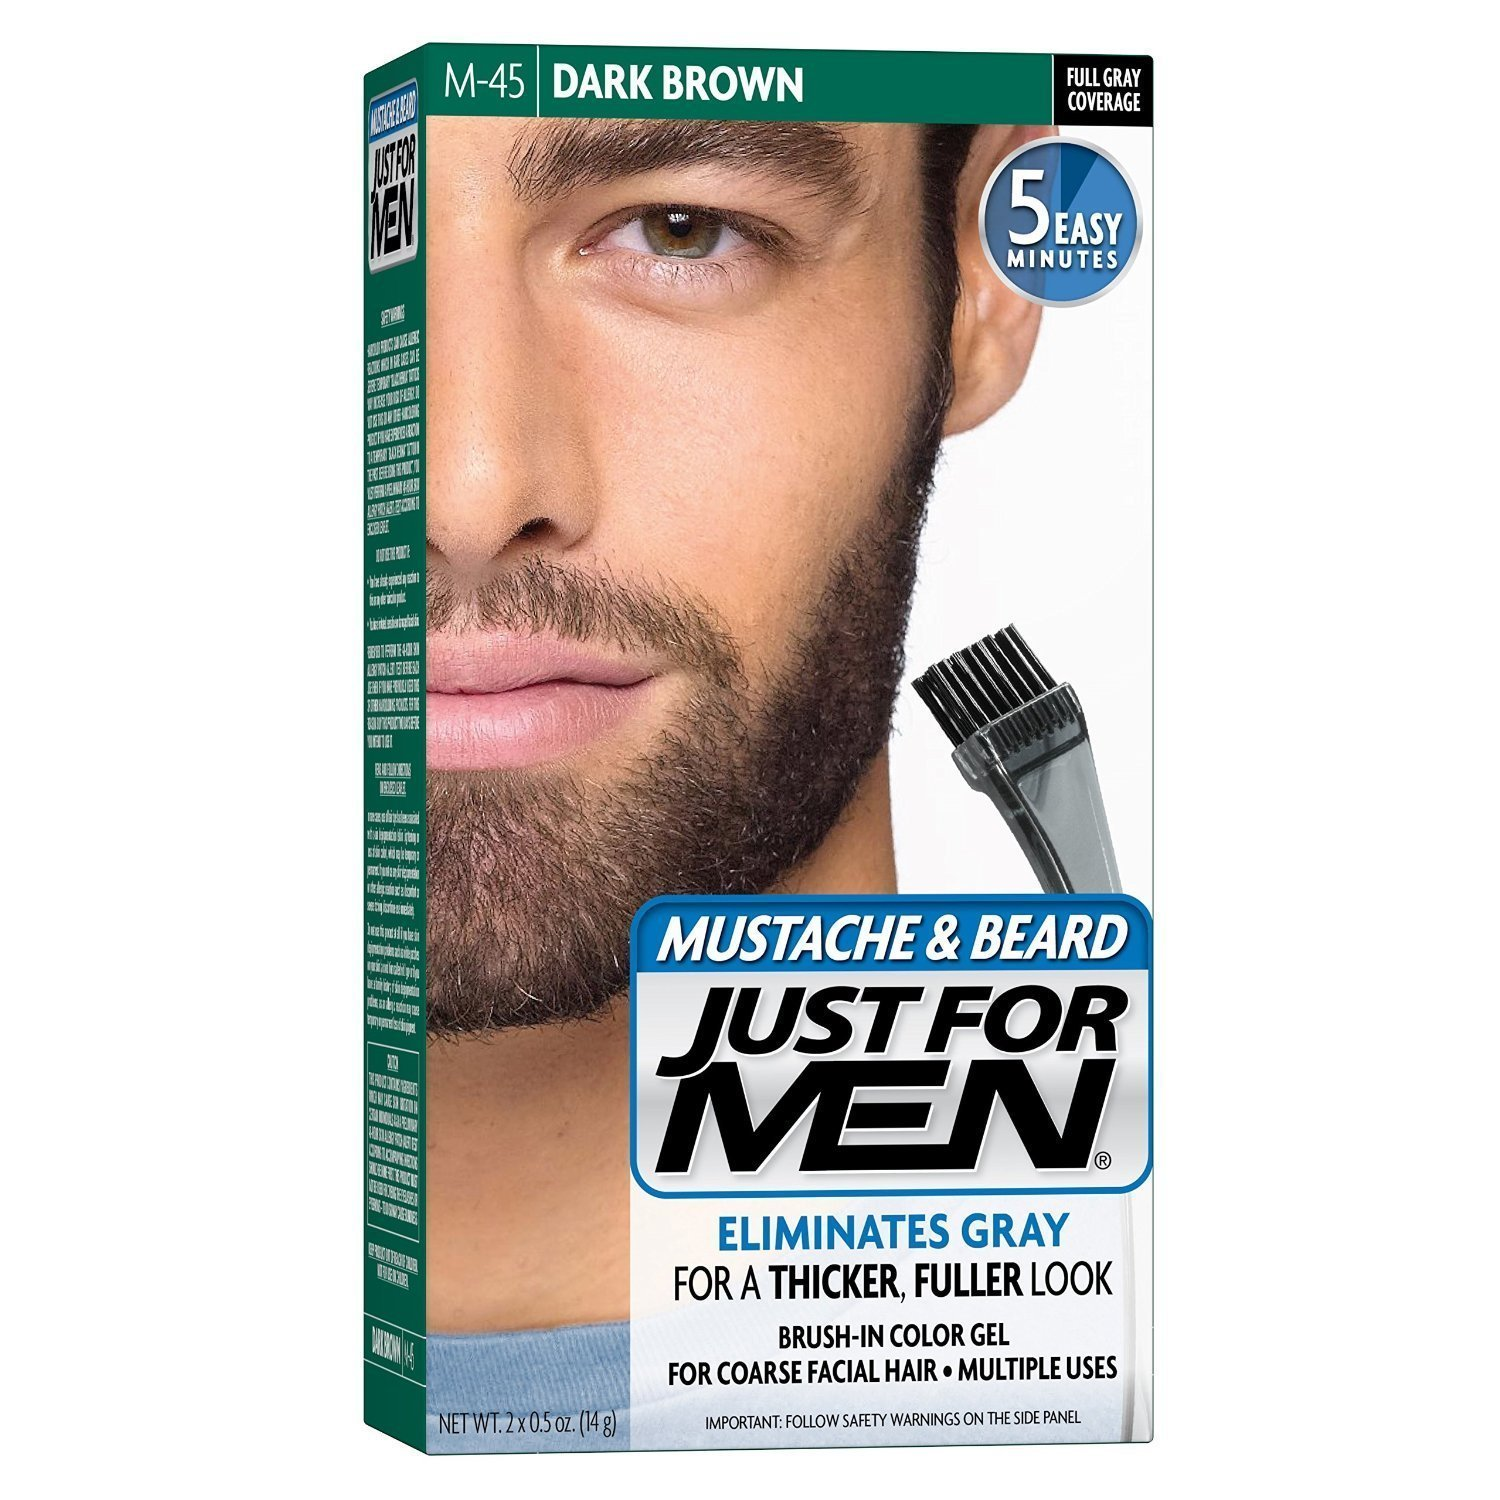 Just For Men Mustache & Beard Brush-In Color Gel Dark Brown M-45 - 1 ea., Pack of 2 COMBE INCORPORATED